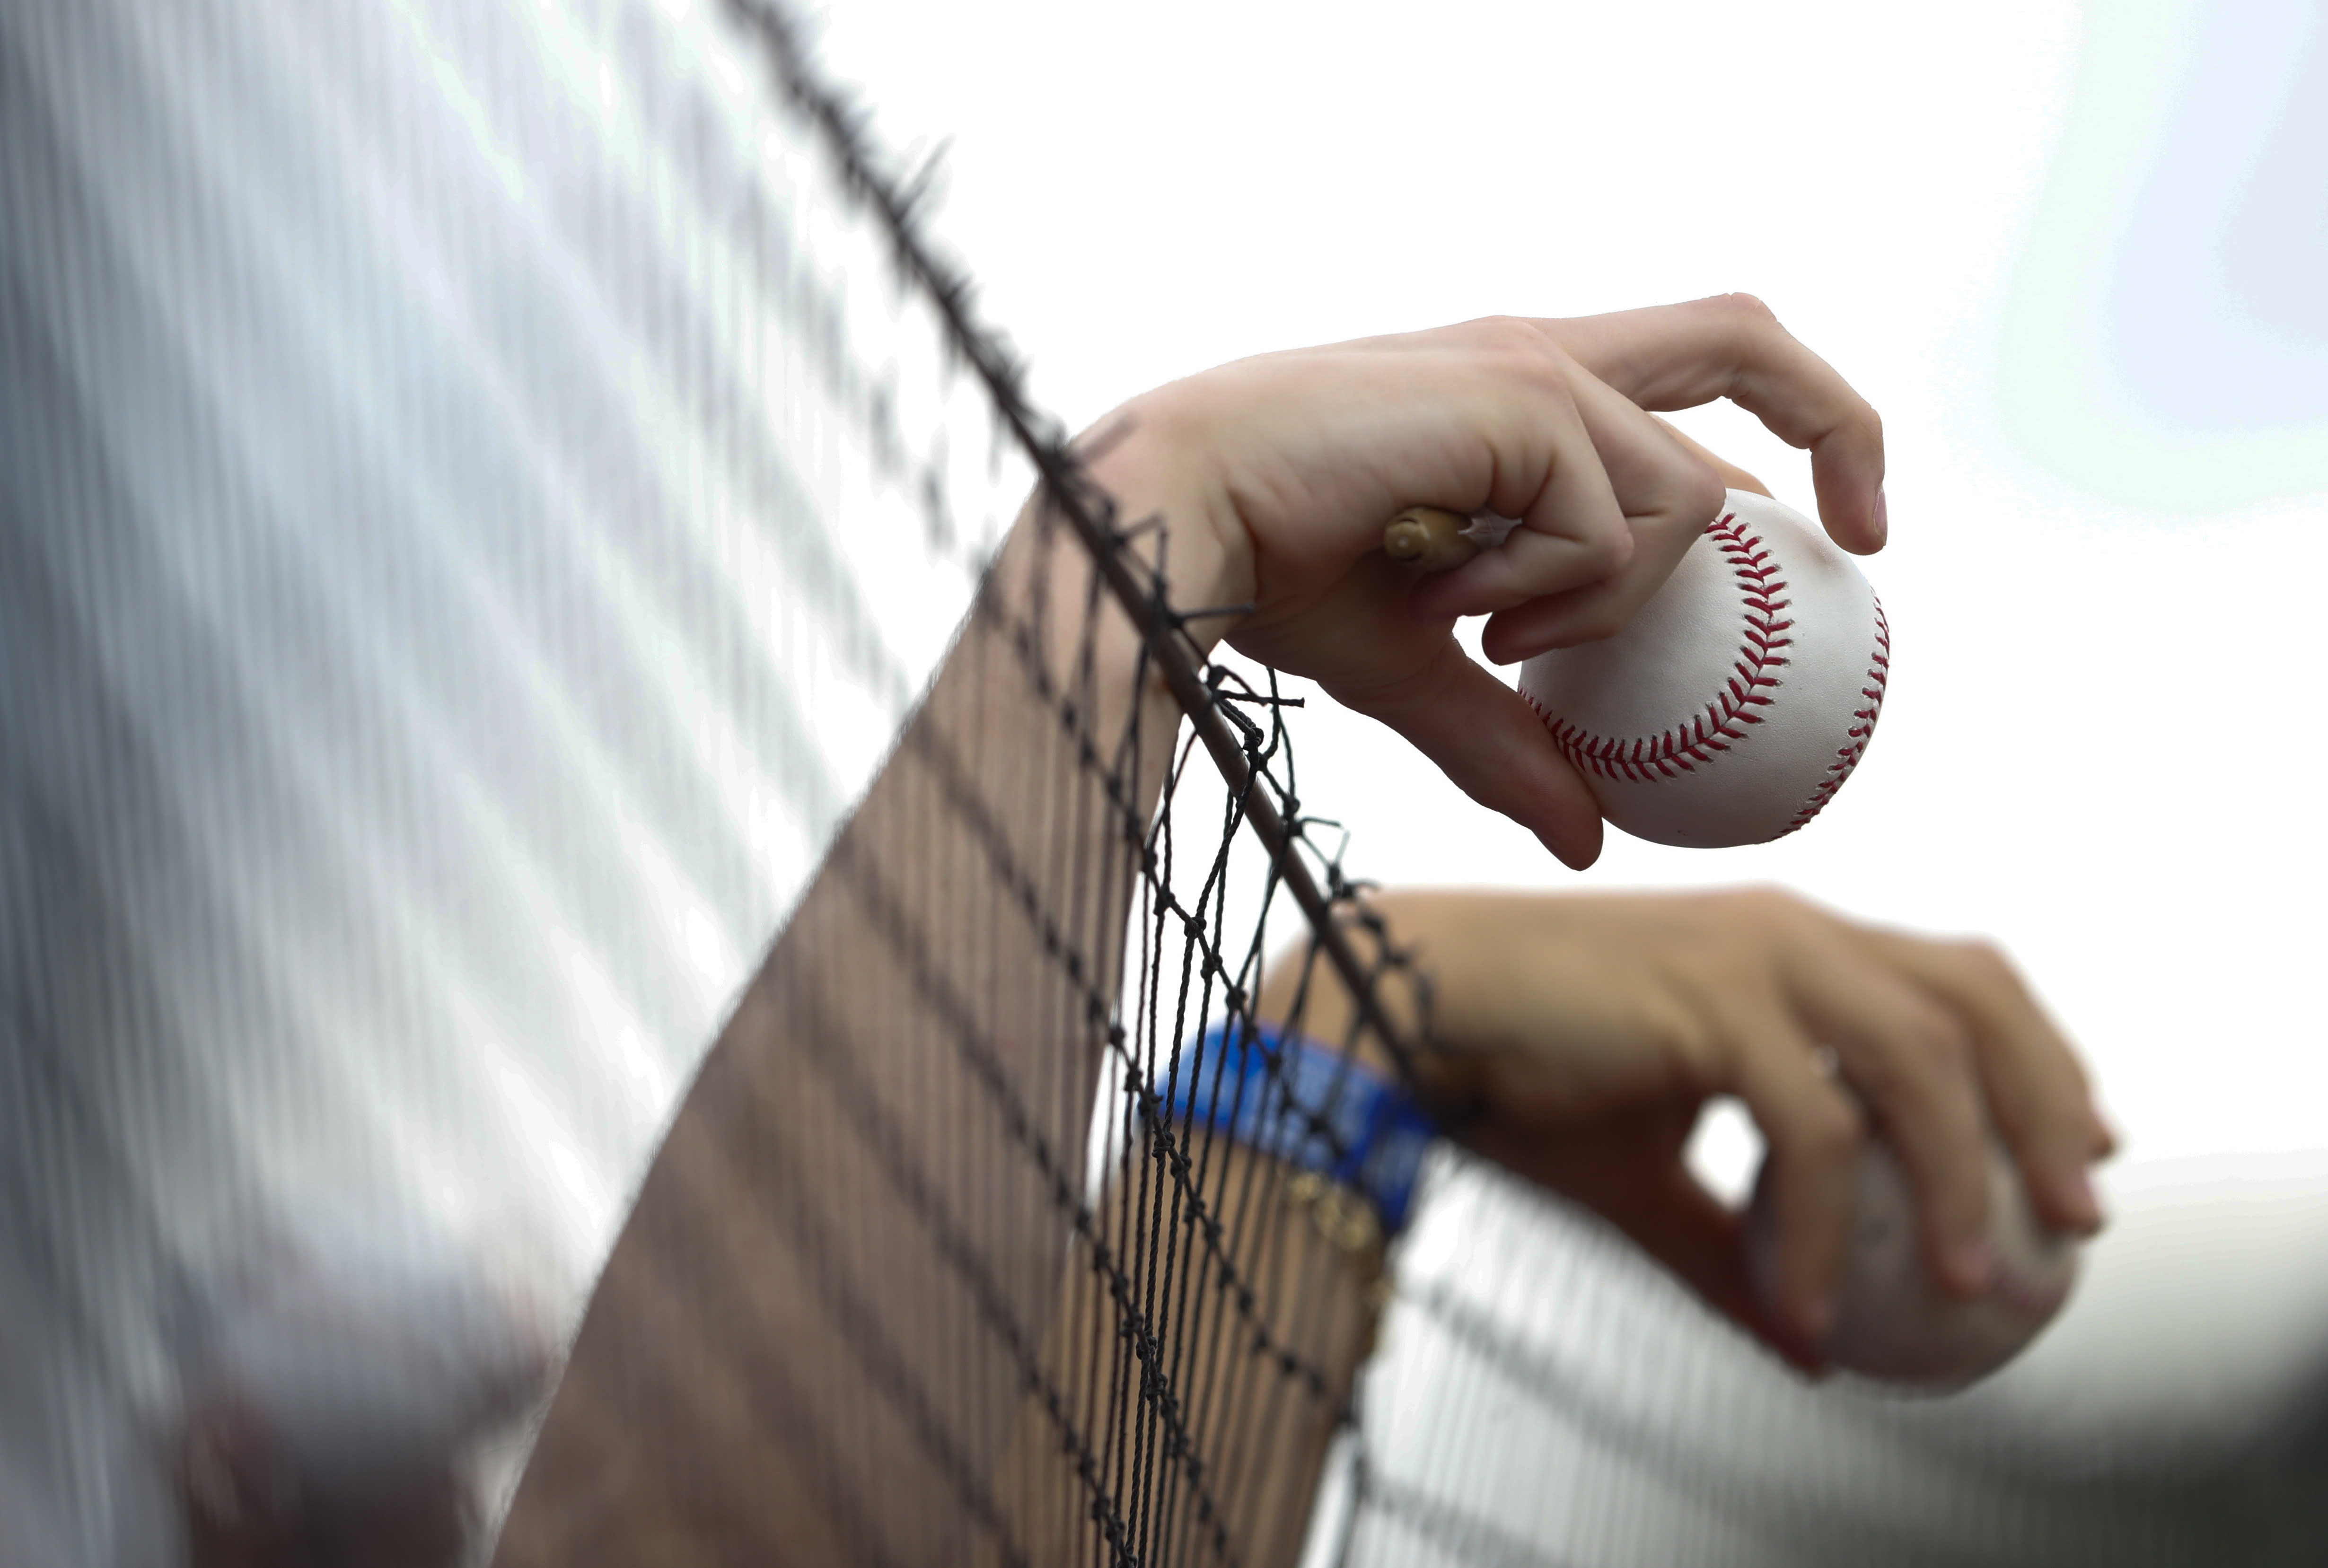 "FILE - In this March 11, 2018 file photo fans holds baseballs over the protective netting before a spring training game between the New York Mets and the Houston Astros, in Port St. Lucie, Fla. Illinois' two senators have urged Major League Baseball to be more transparent about fans who are injured by foul balls, saying the lack of data is creating confusion about the extent of the problem. Democratic Sens. Dick Durbin and Tammy Duckworth said in a letter to baseball Commissioner Rob Manfred this week that MLB should ""collect and report data about fan injuries."" (AP Photo/John Bazemore, file)"